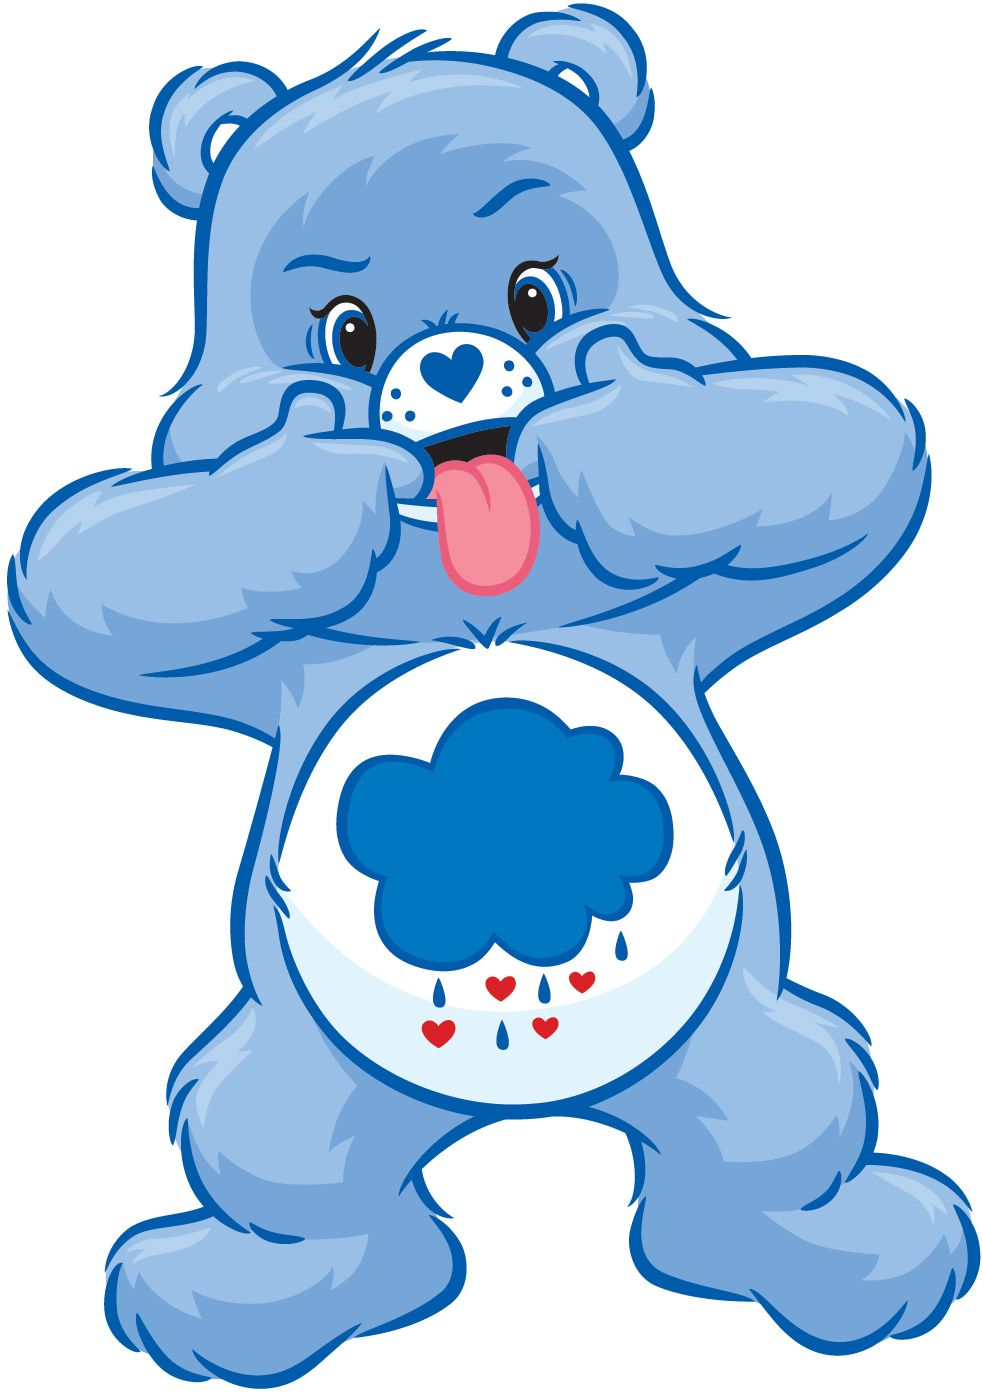 Clipart care bears clip art free library Grumpy Bear at his best! Lol! | Meet the Care Bears | Care bear ... clip art free library